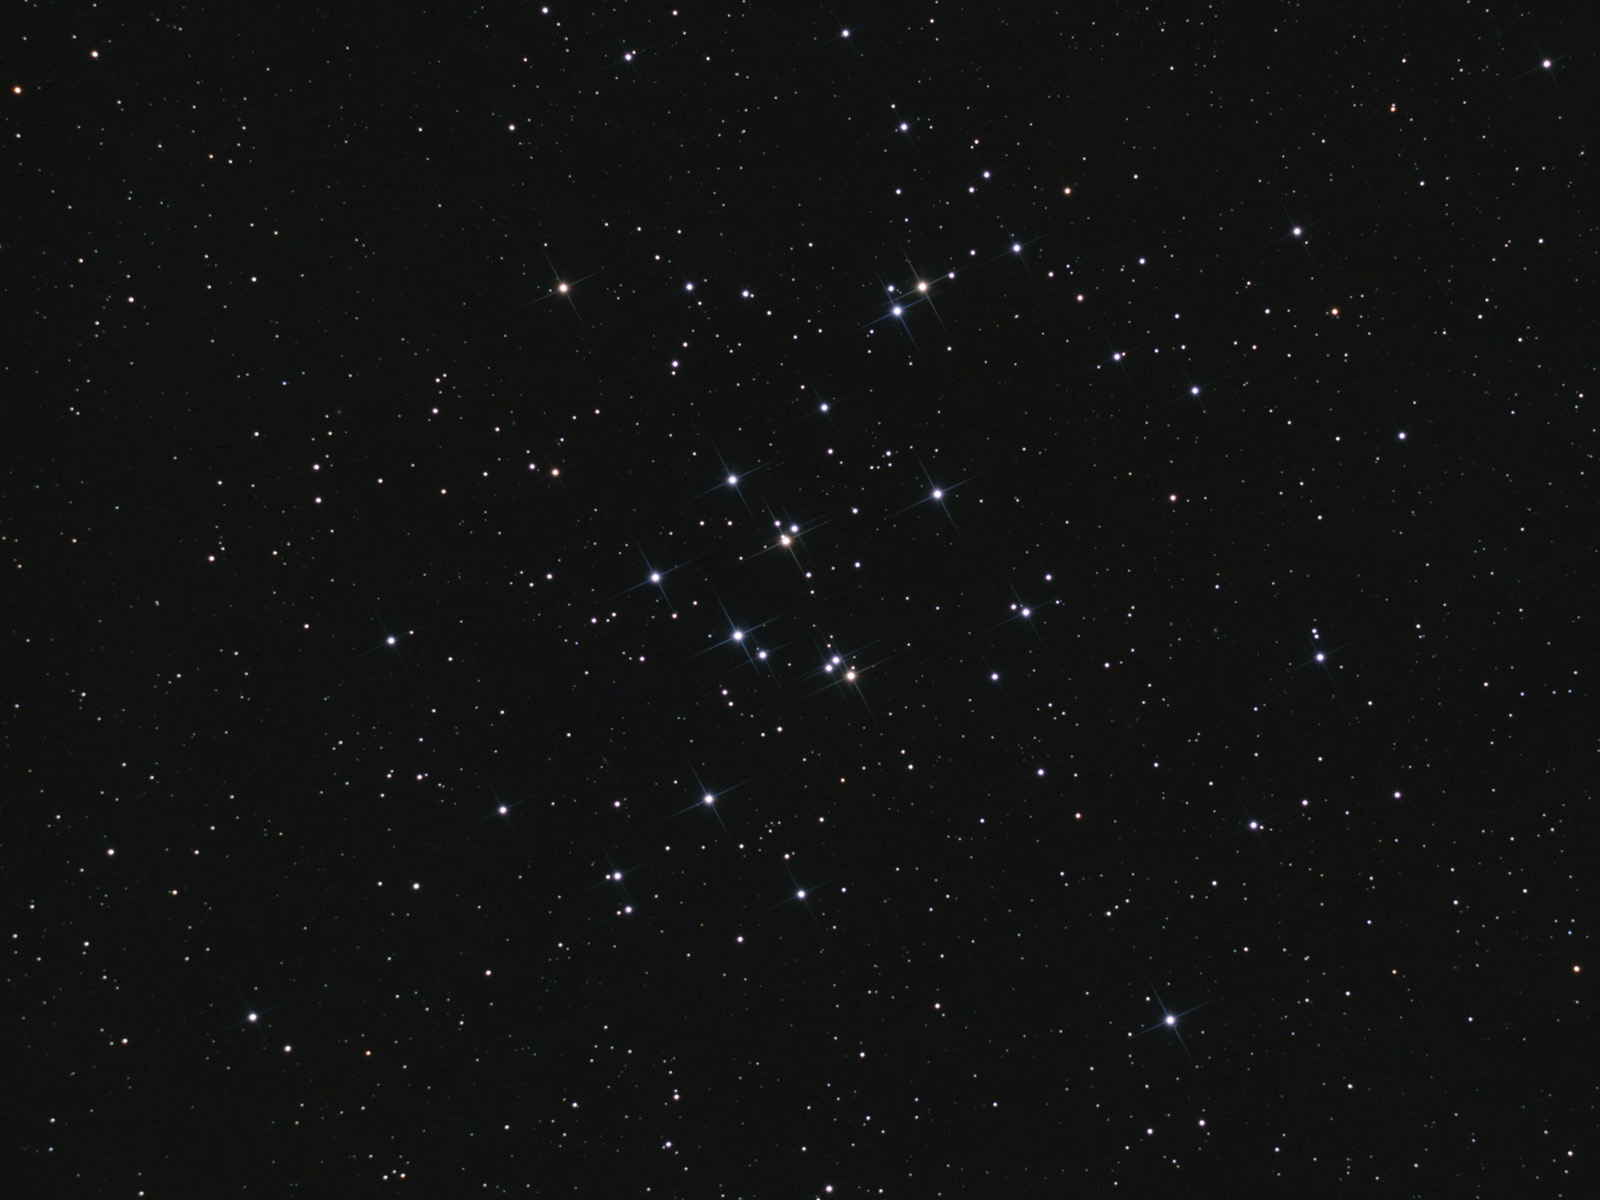 Baad Hyperion Astronomy — M44, NGC 2632, the Beehive